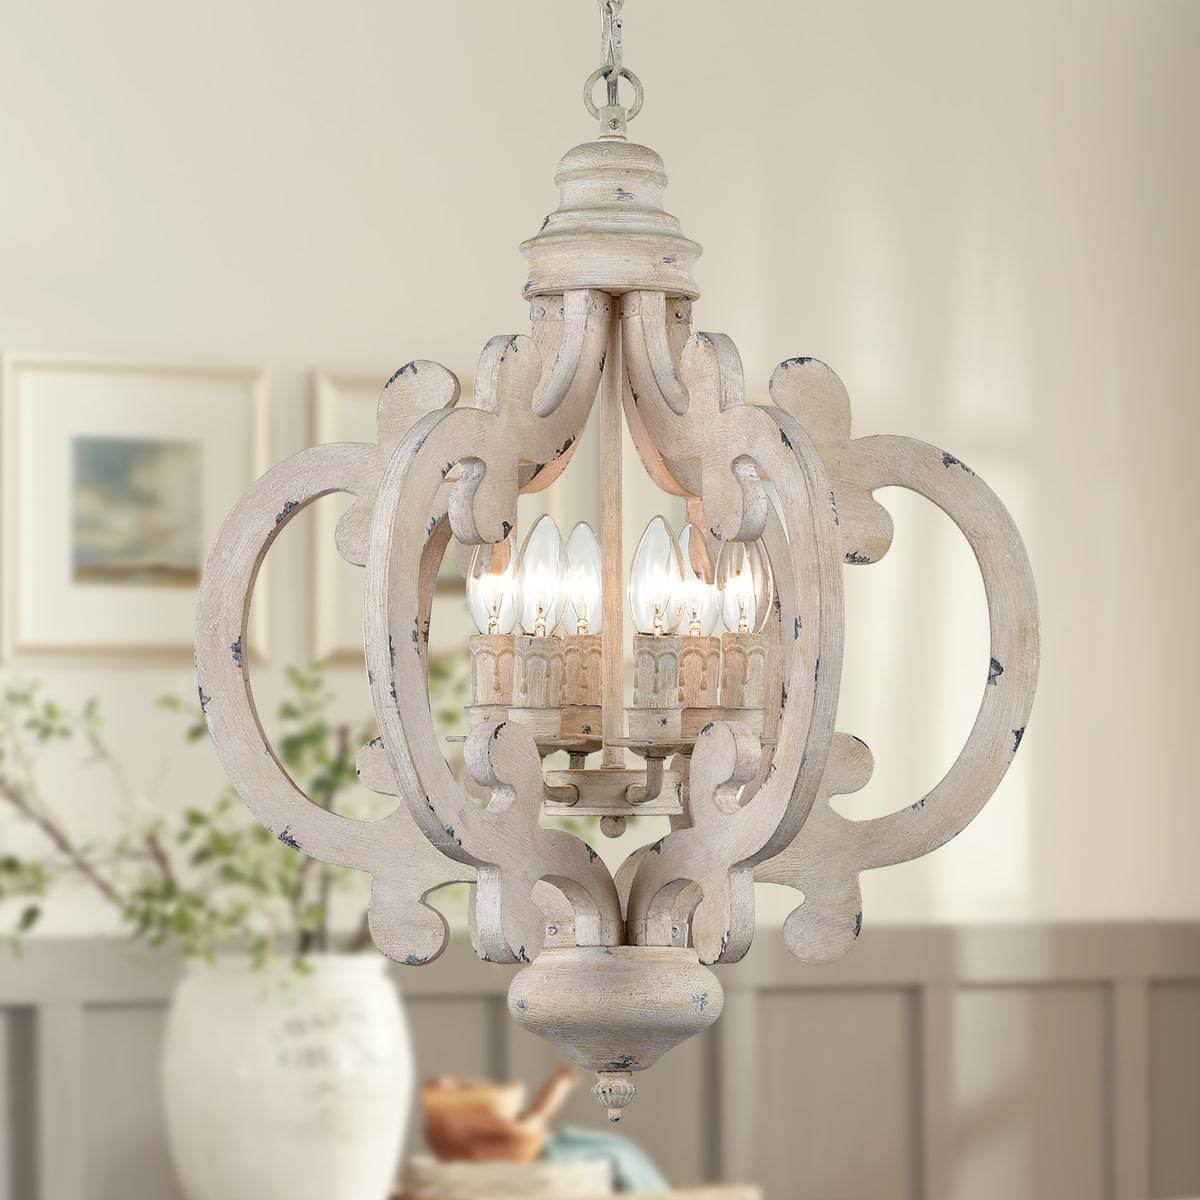 Distressed Wood Pendant Chandelier 6-Light Dining Fixture